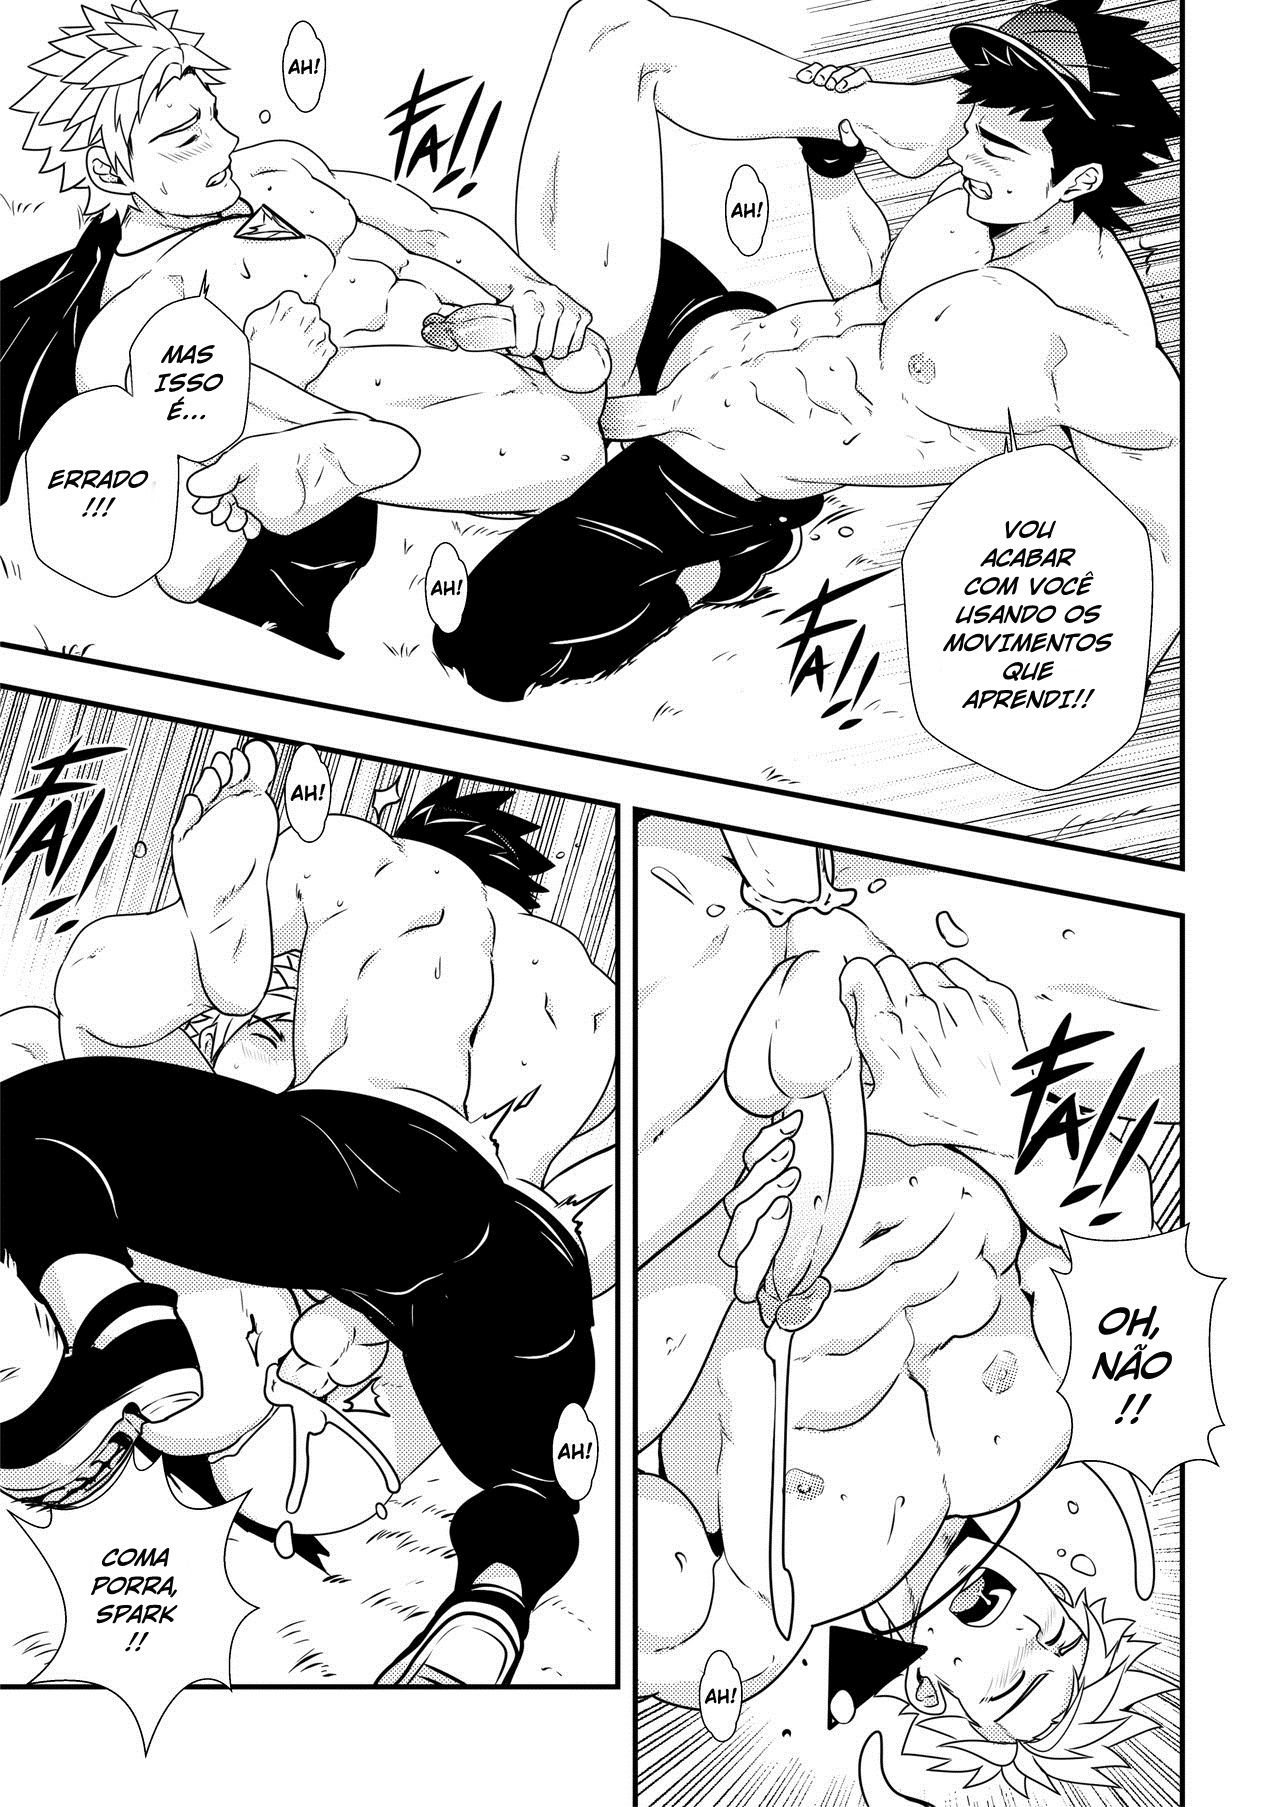 Pokémon Hentai Gay - Foto 22